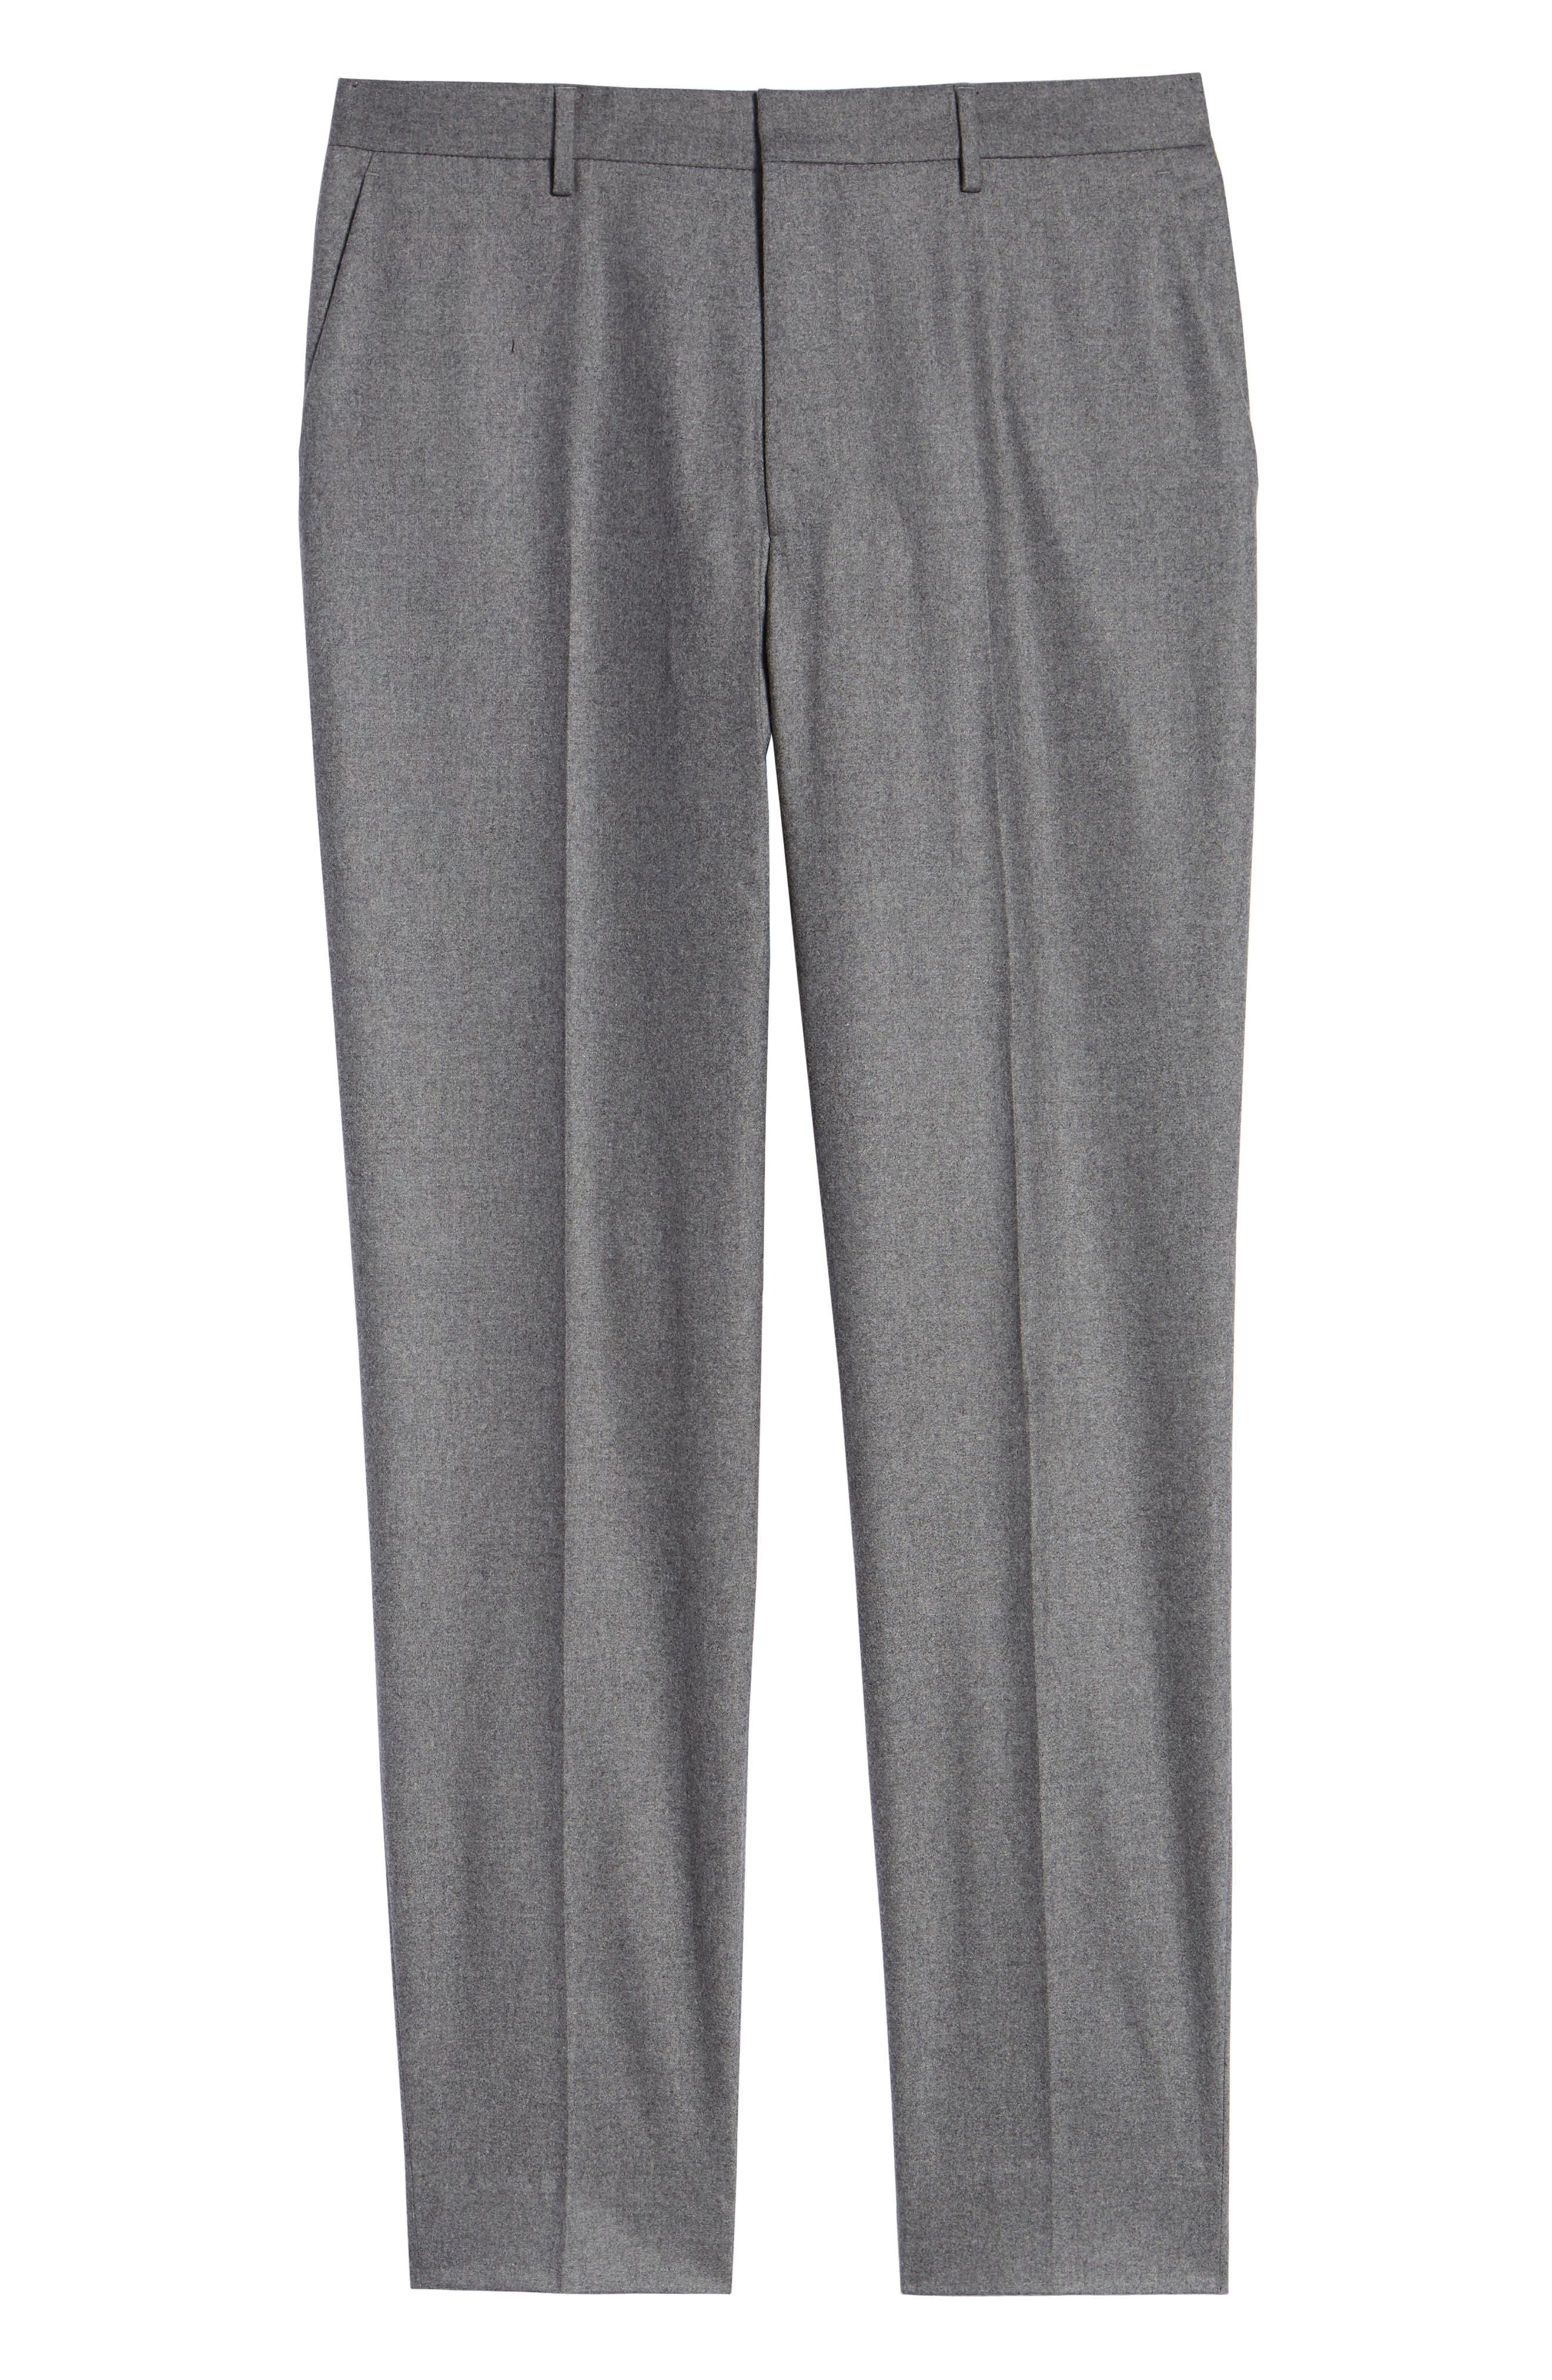 Pirko Flat Front Solid Stretch Wool Trousers,                             Alternate thumbnail 6, color,                             MEDIUM GREY